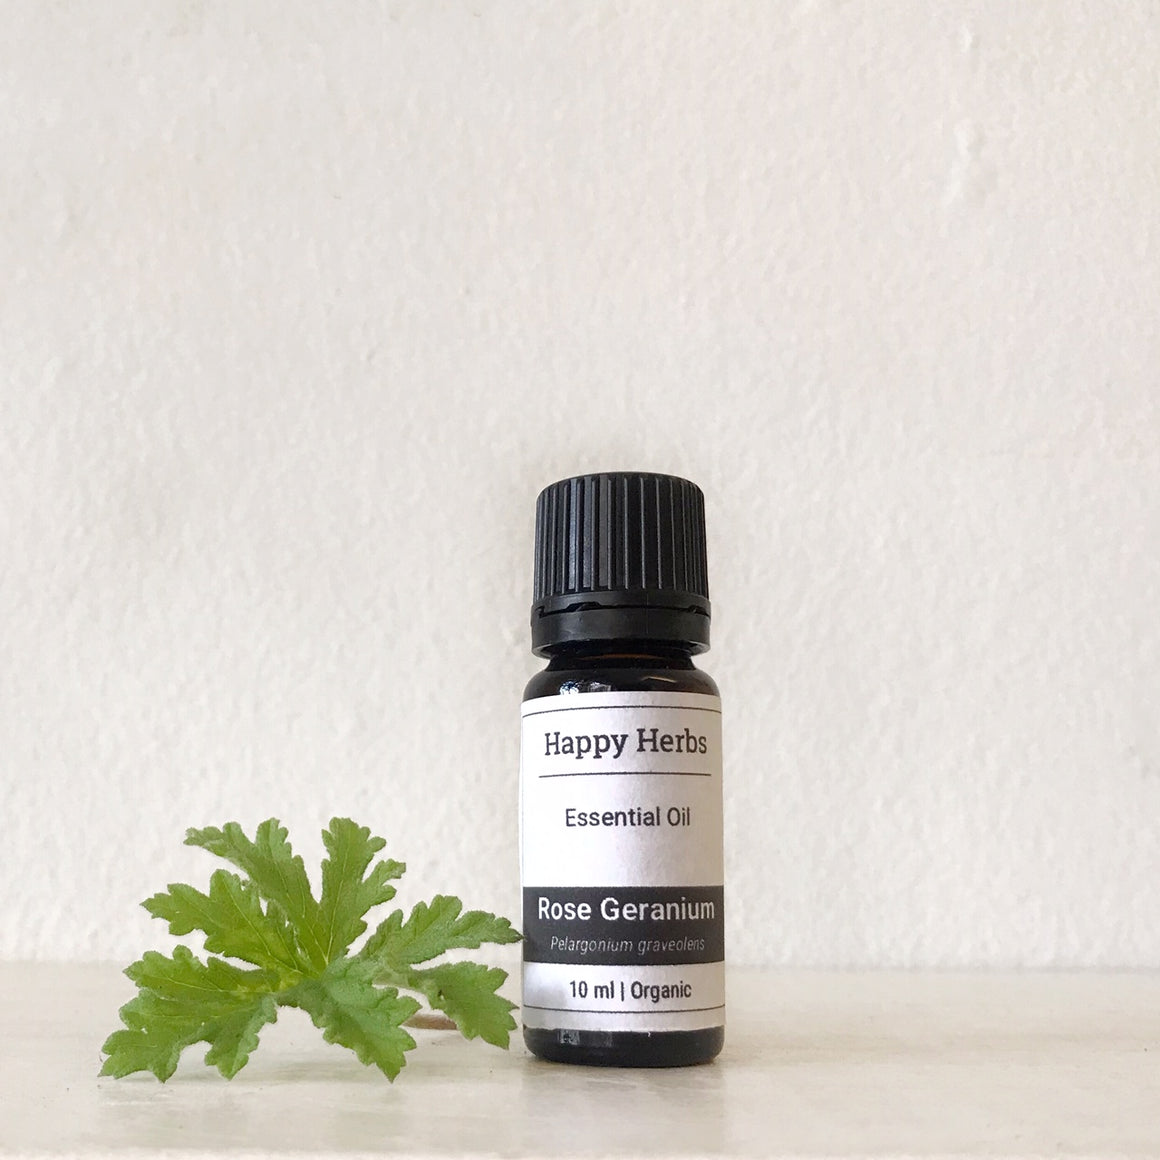 Rose Geranium essential oil - Happy Herbs